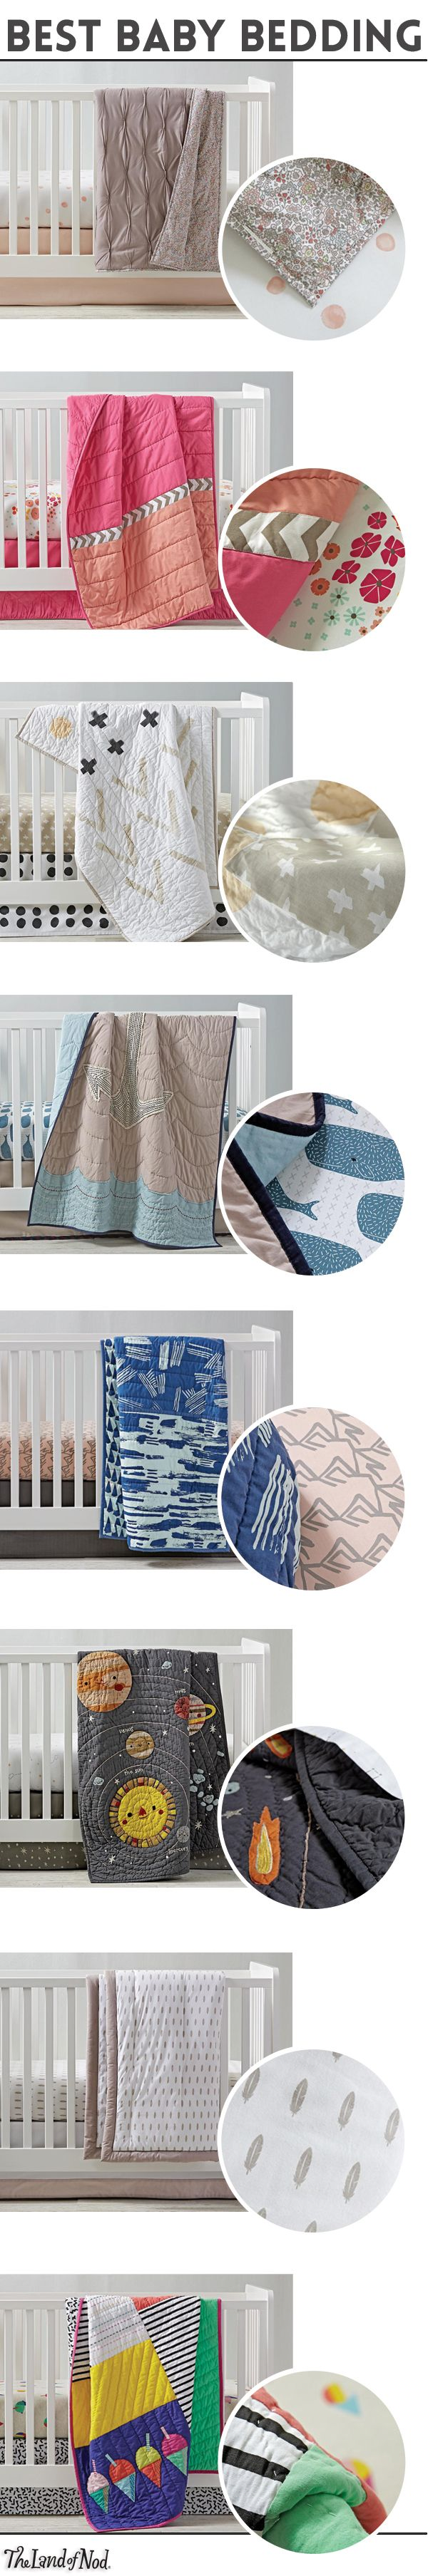 Chicco polly se high chair perseo modern high chairs and booster - Create The Coziest Nursery For Your Little Ones With Amazing Crib Bedding Sets The Land